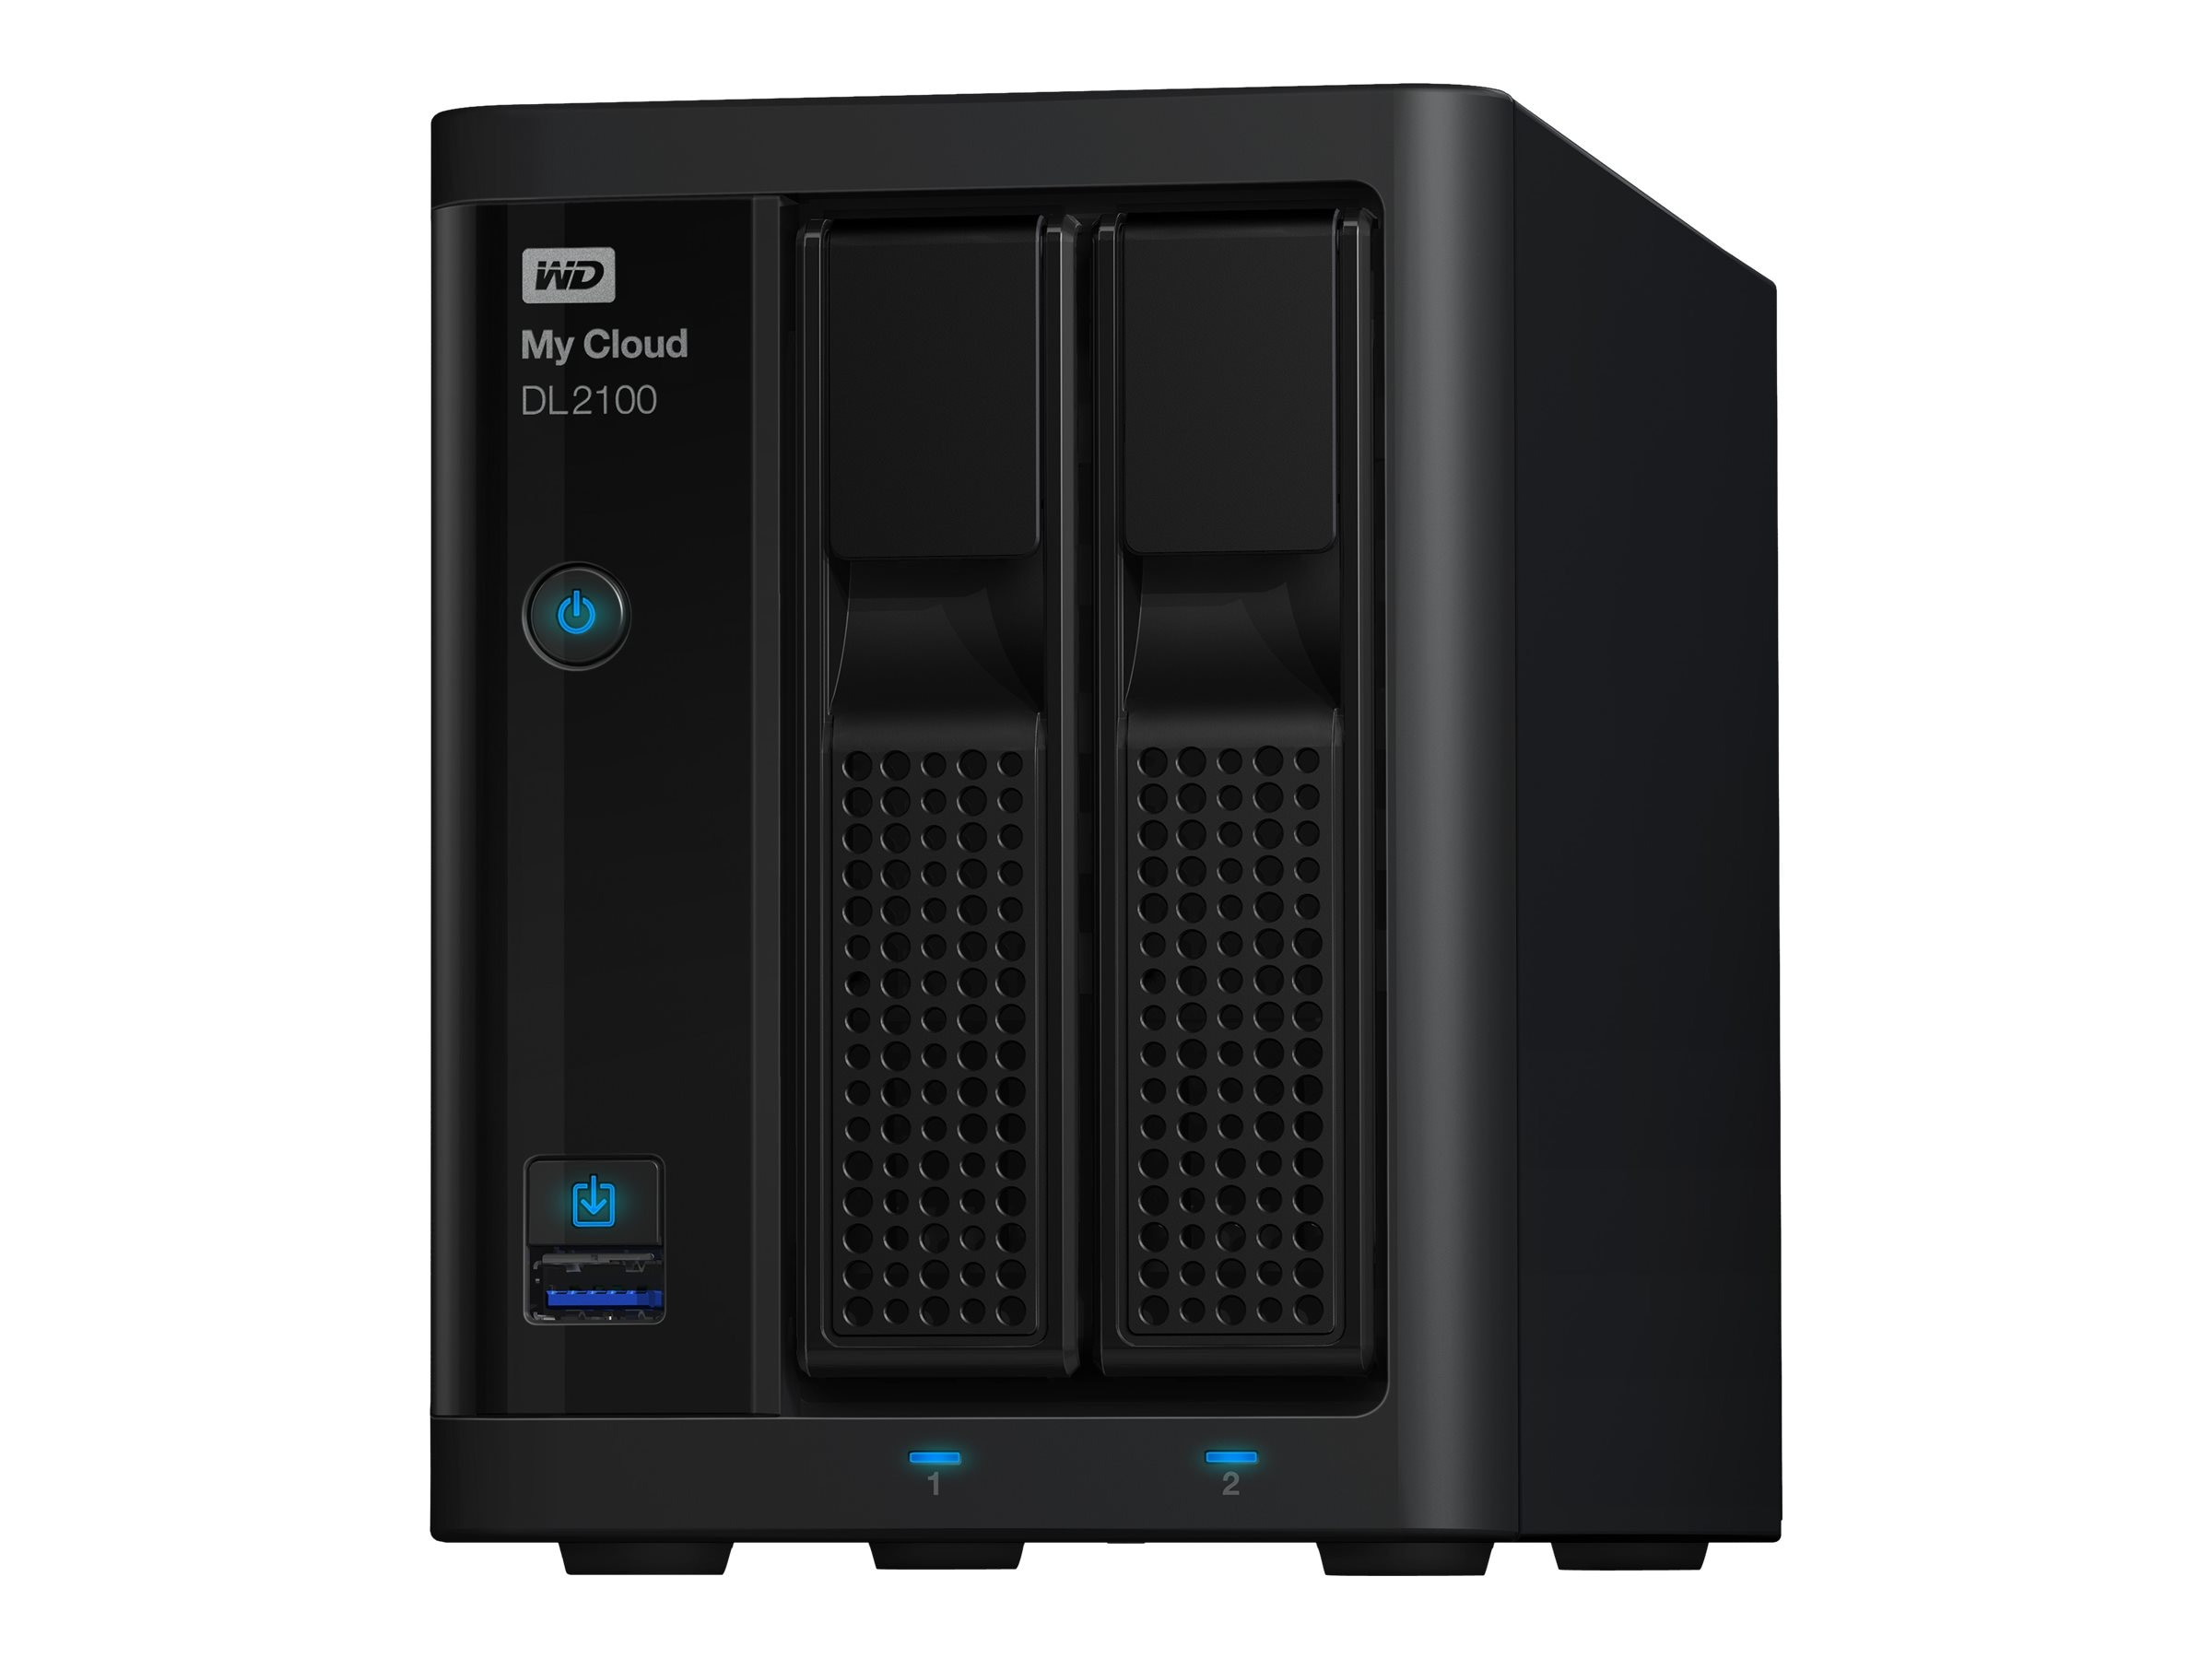 WD 12TB My Cloud DL2100 Network Attached Storage, WDBBAZ0120JBK-NESN, 18442747, Network Attached Storage